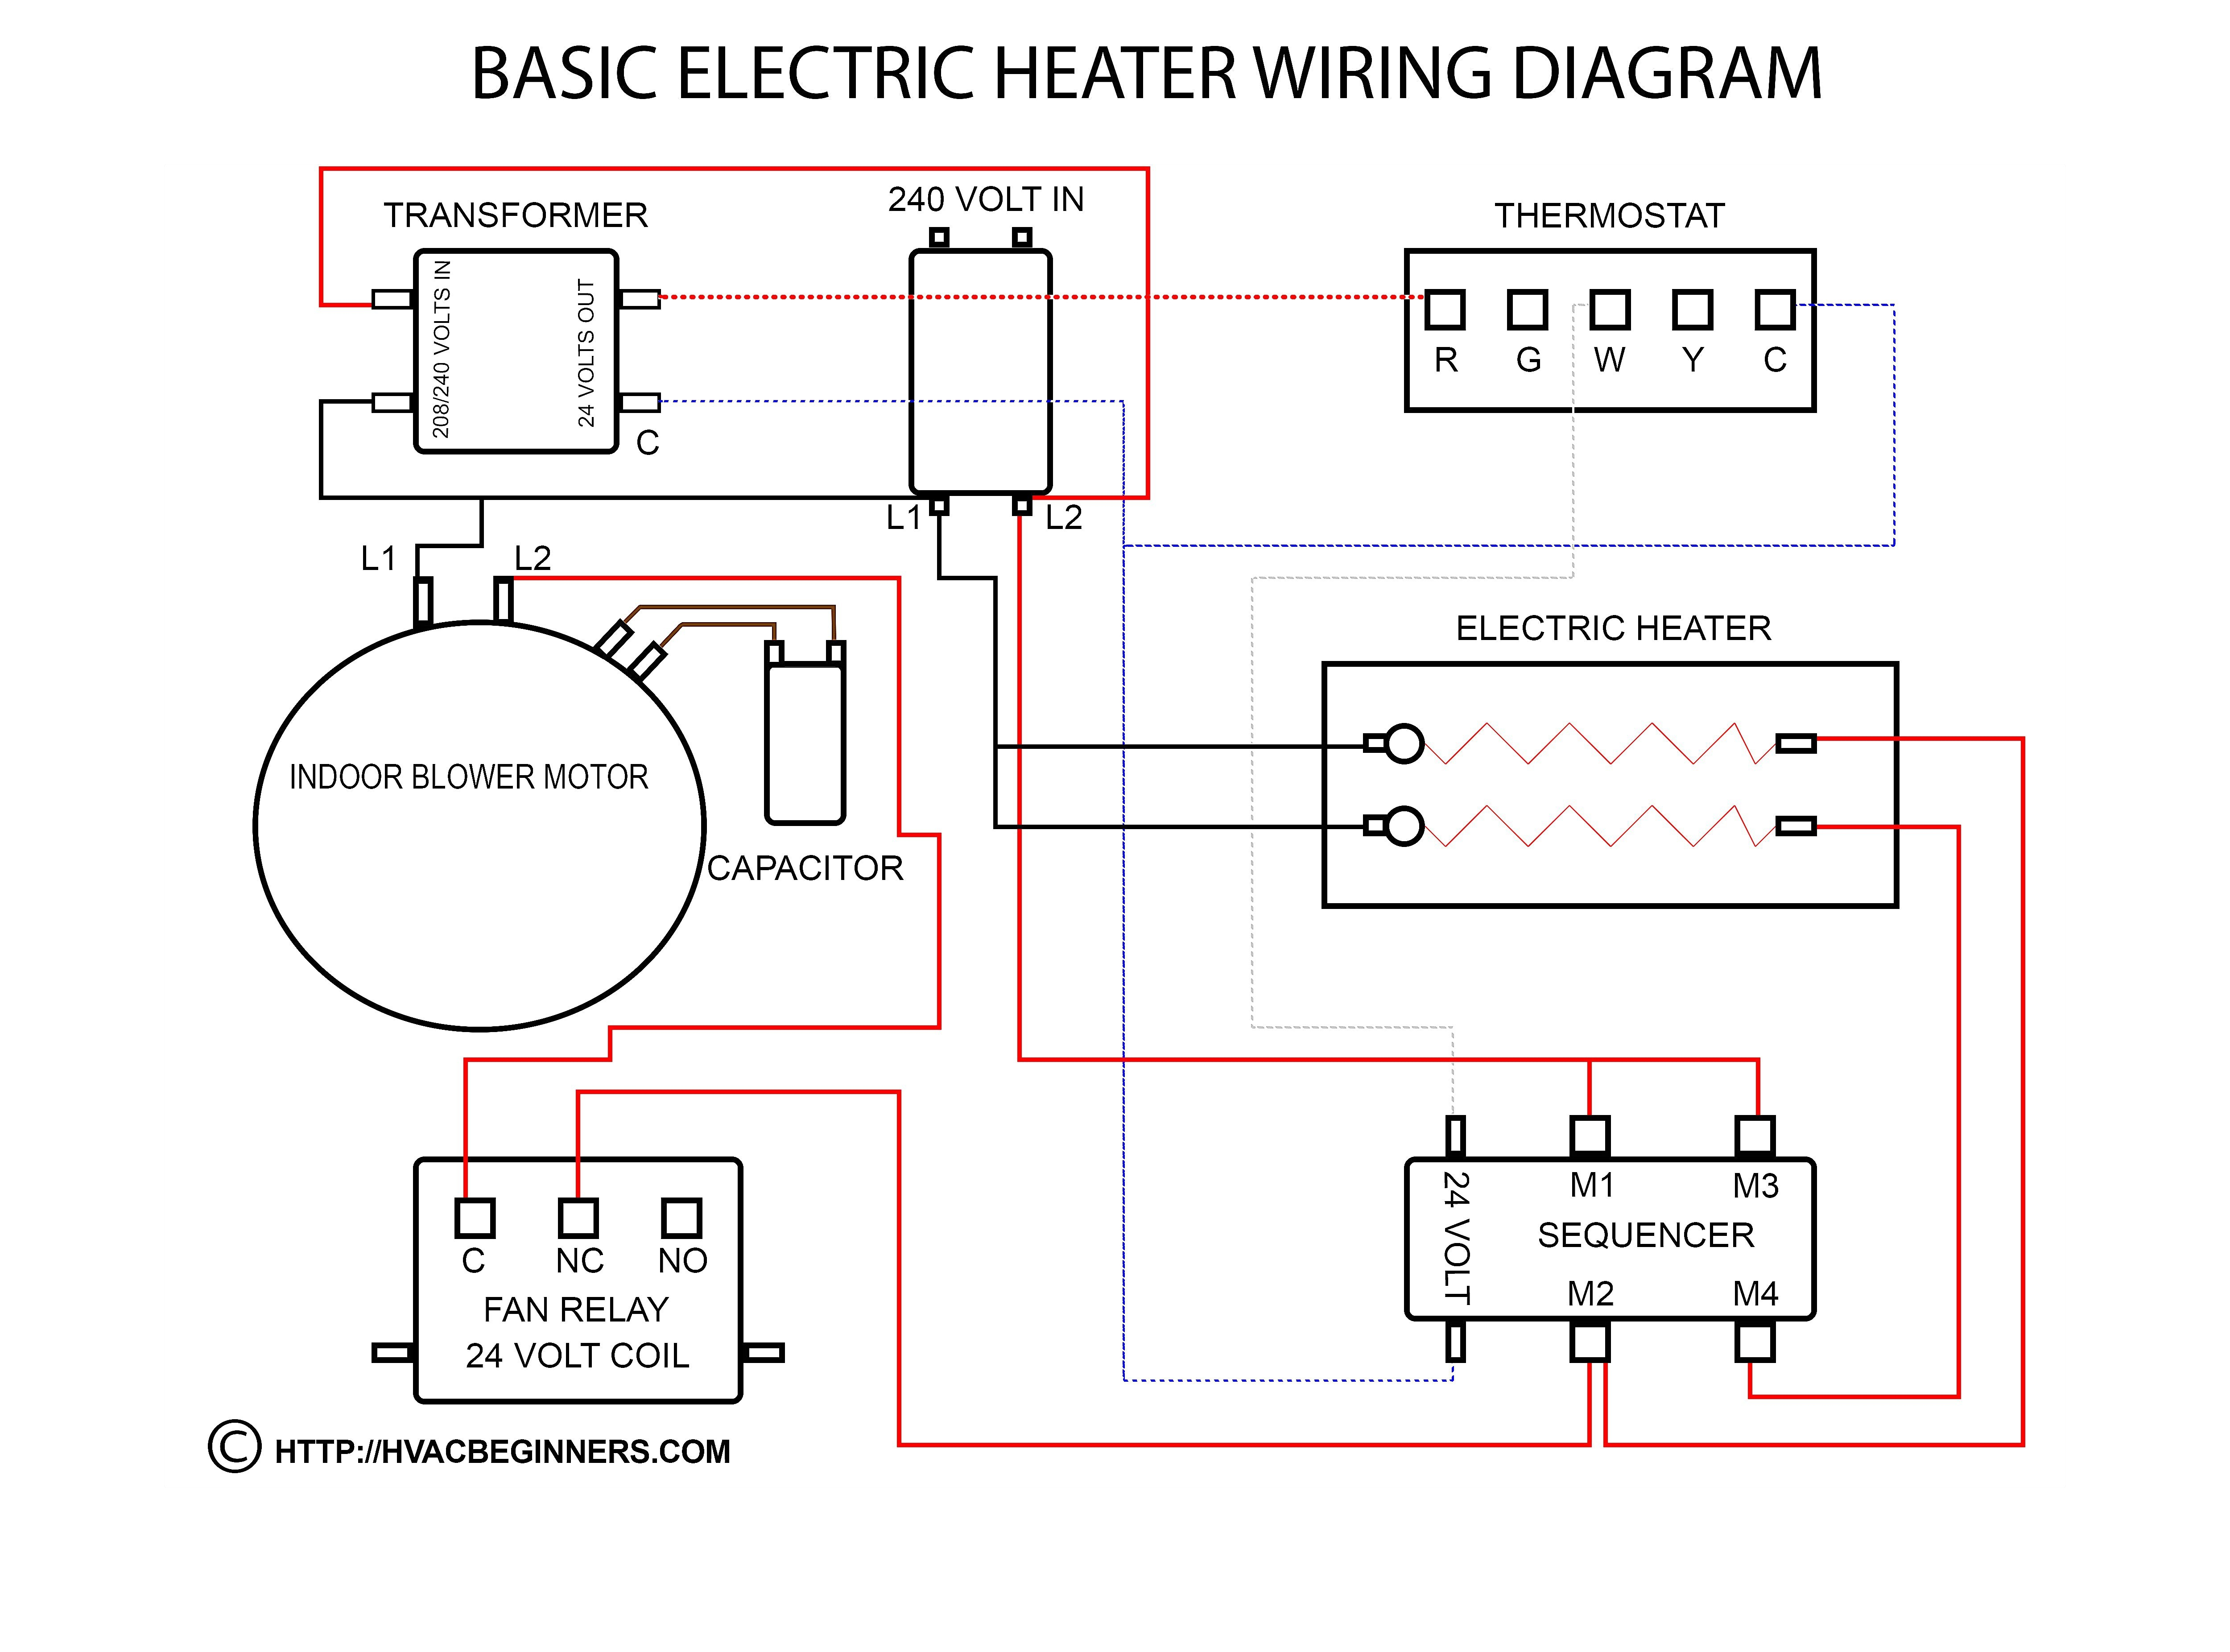 208 volt wiring diagram diagram schematic rh yomelaniejo co 240 Single Phase Wiring Diagram 208 vs 240 Wiring-Diagram